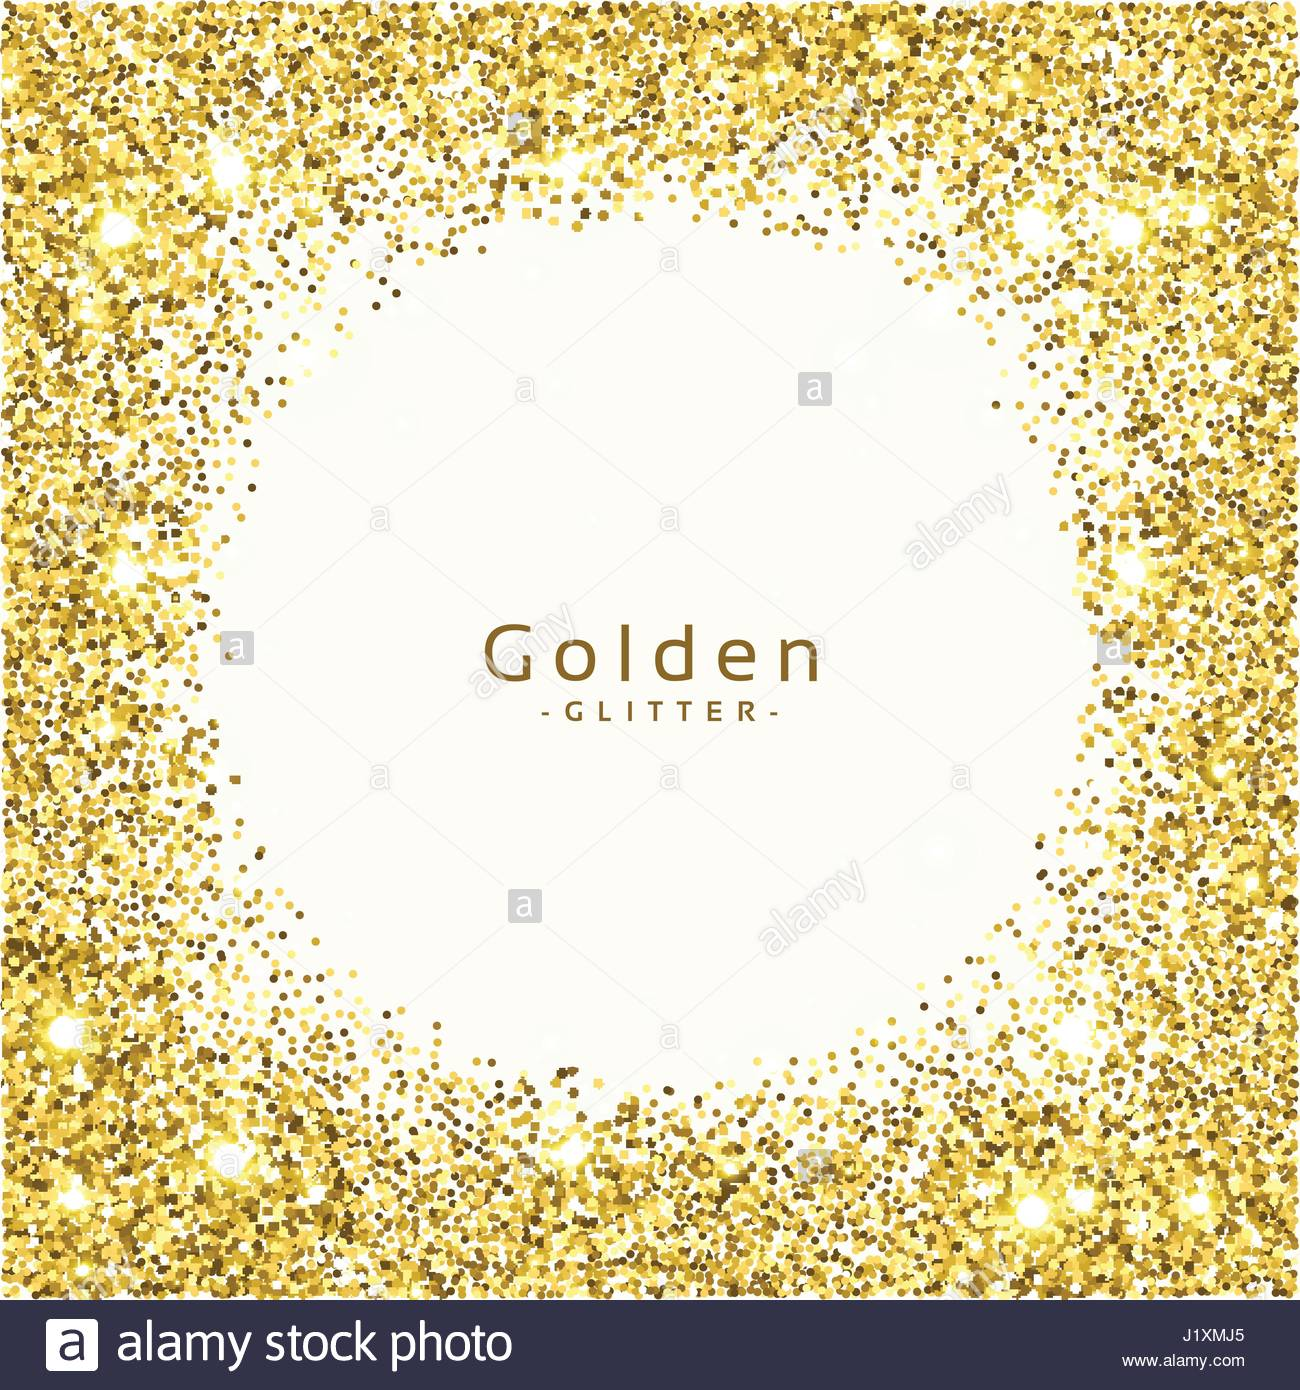 Gold Glitter PNG Images  Vectors and PSD Files  Free